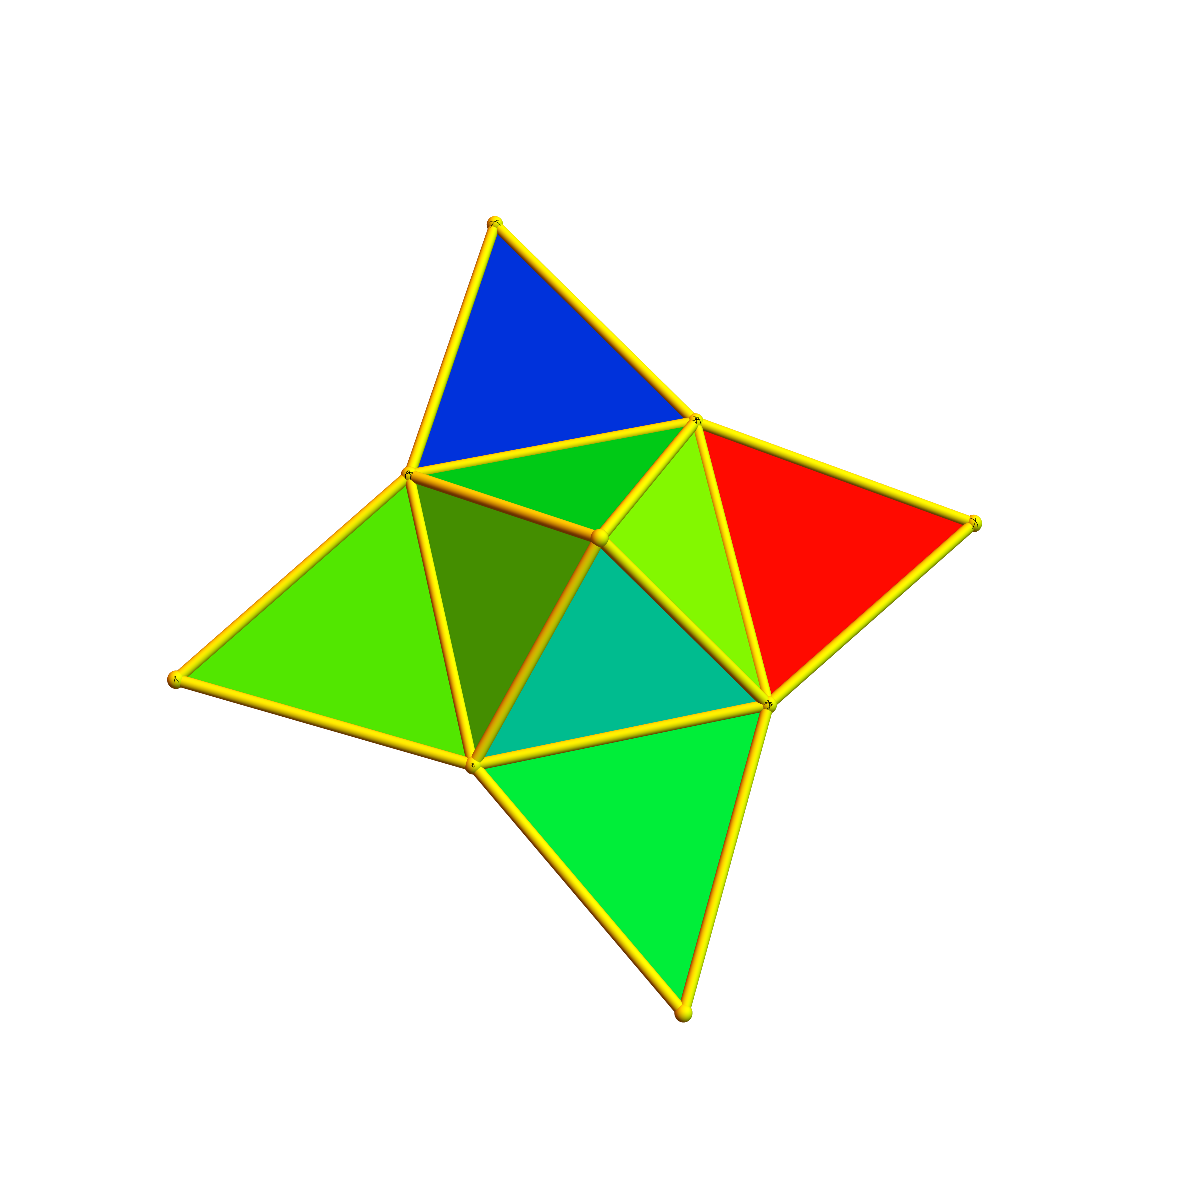 Stellated square